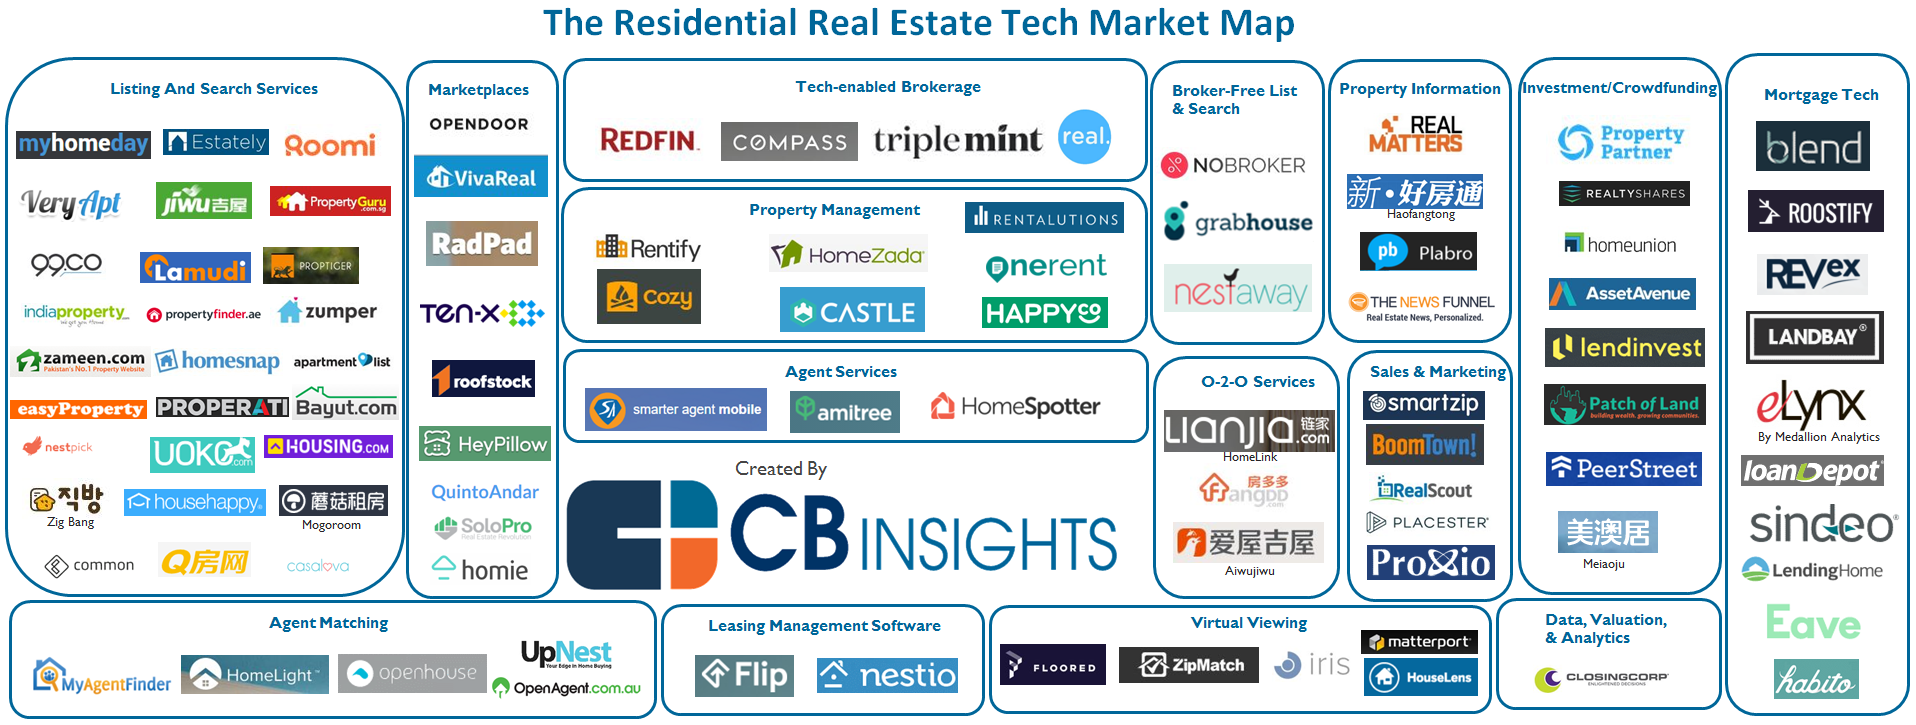 Residential.real.estate.tech_feature.image_4.16__v3